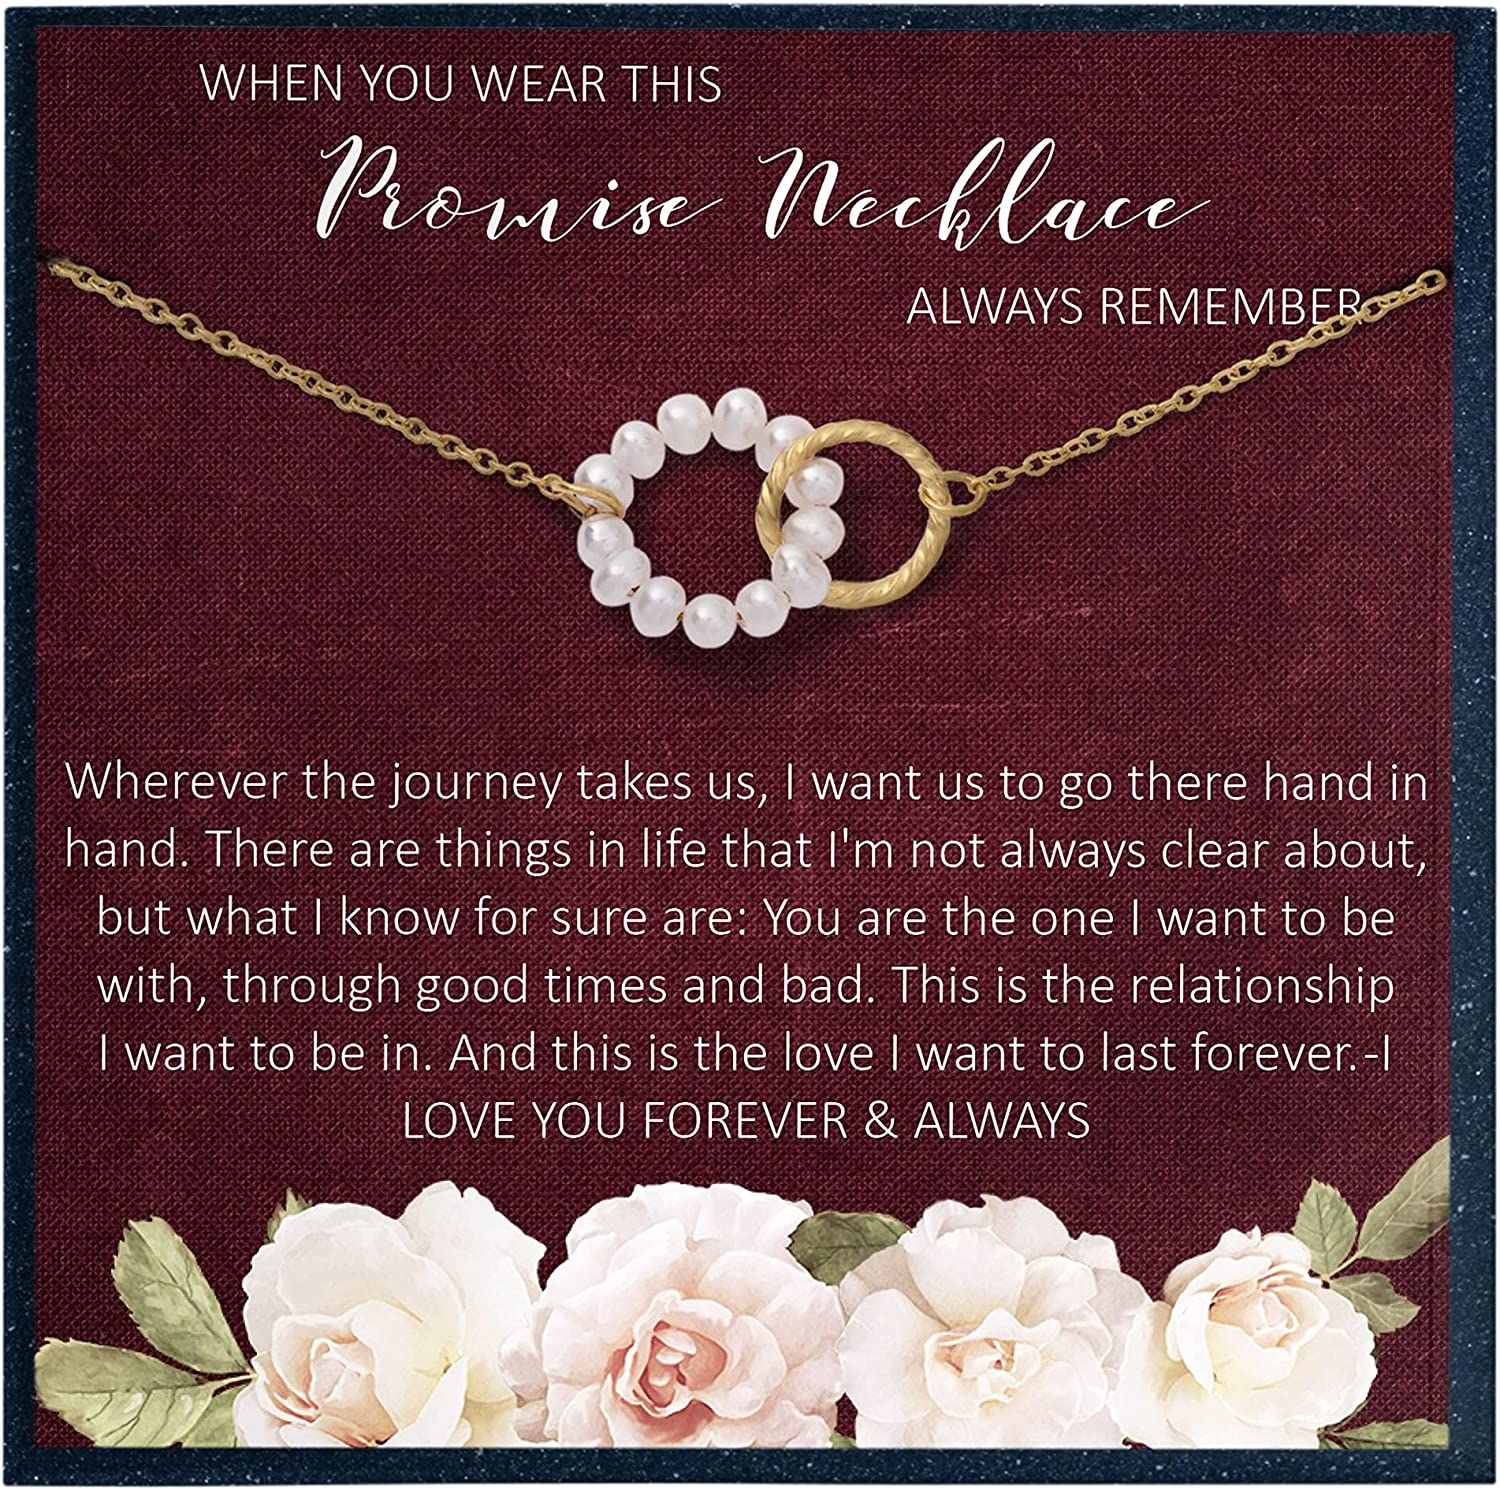 Grace of sold out Pearl Promise Necklace Girlfriend gift Boyfriend for from to